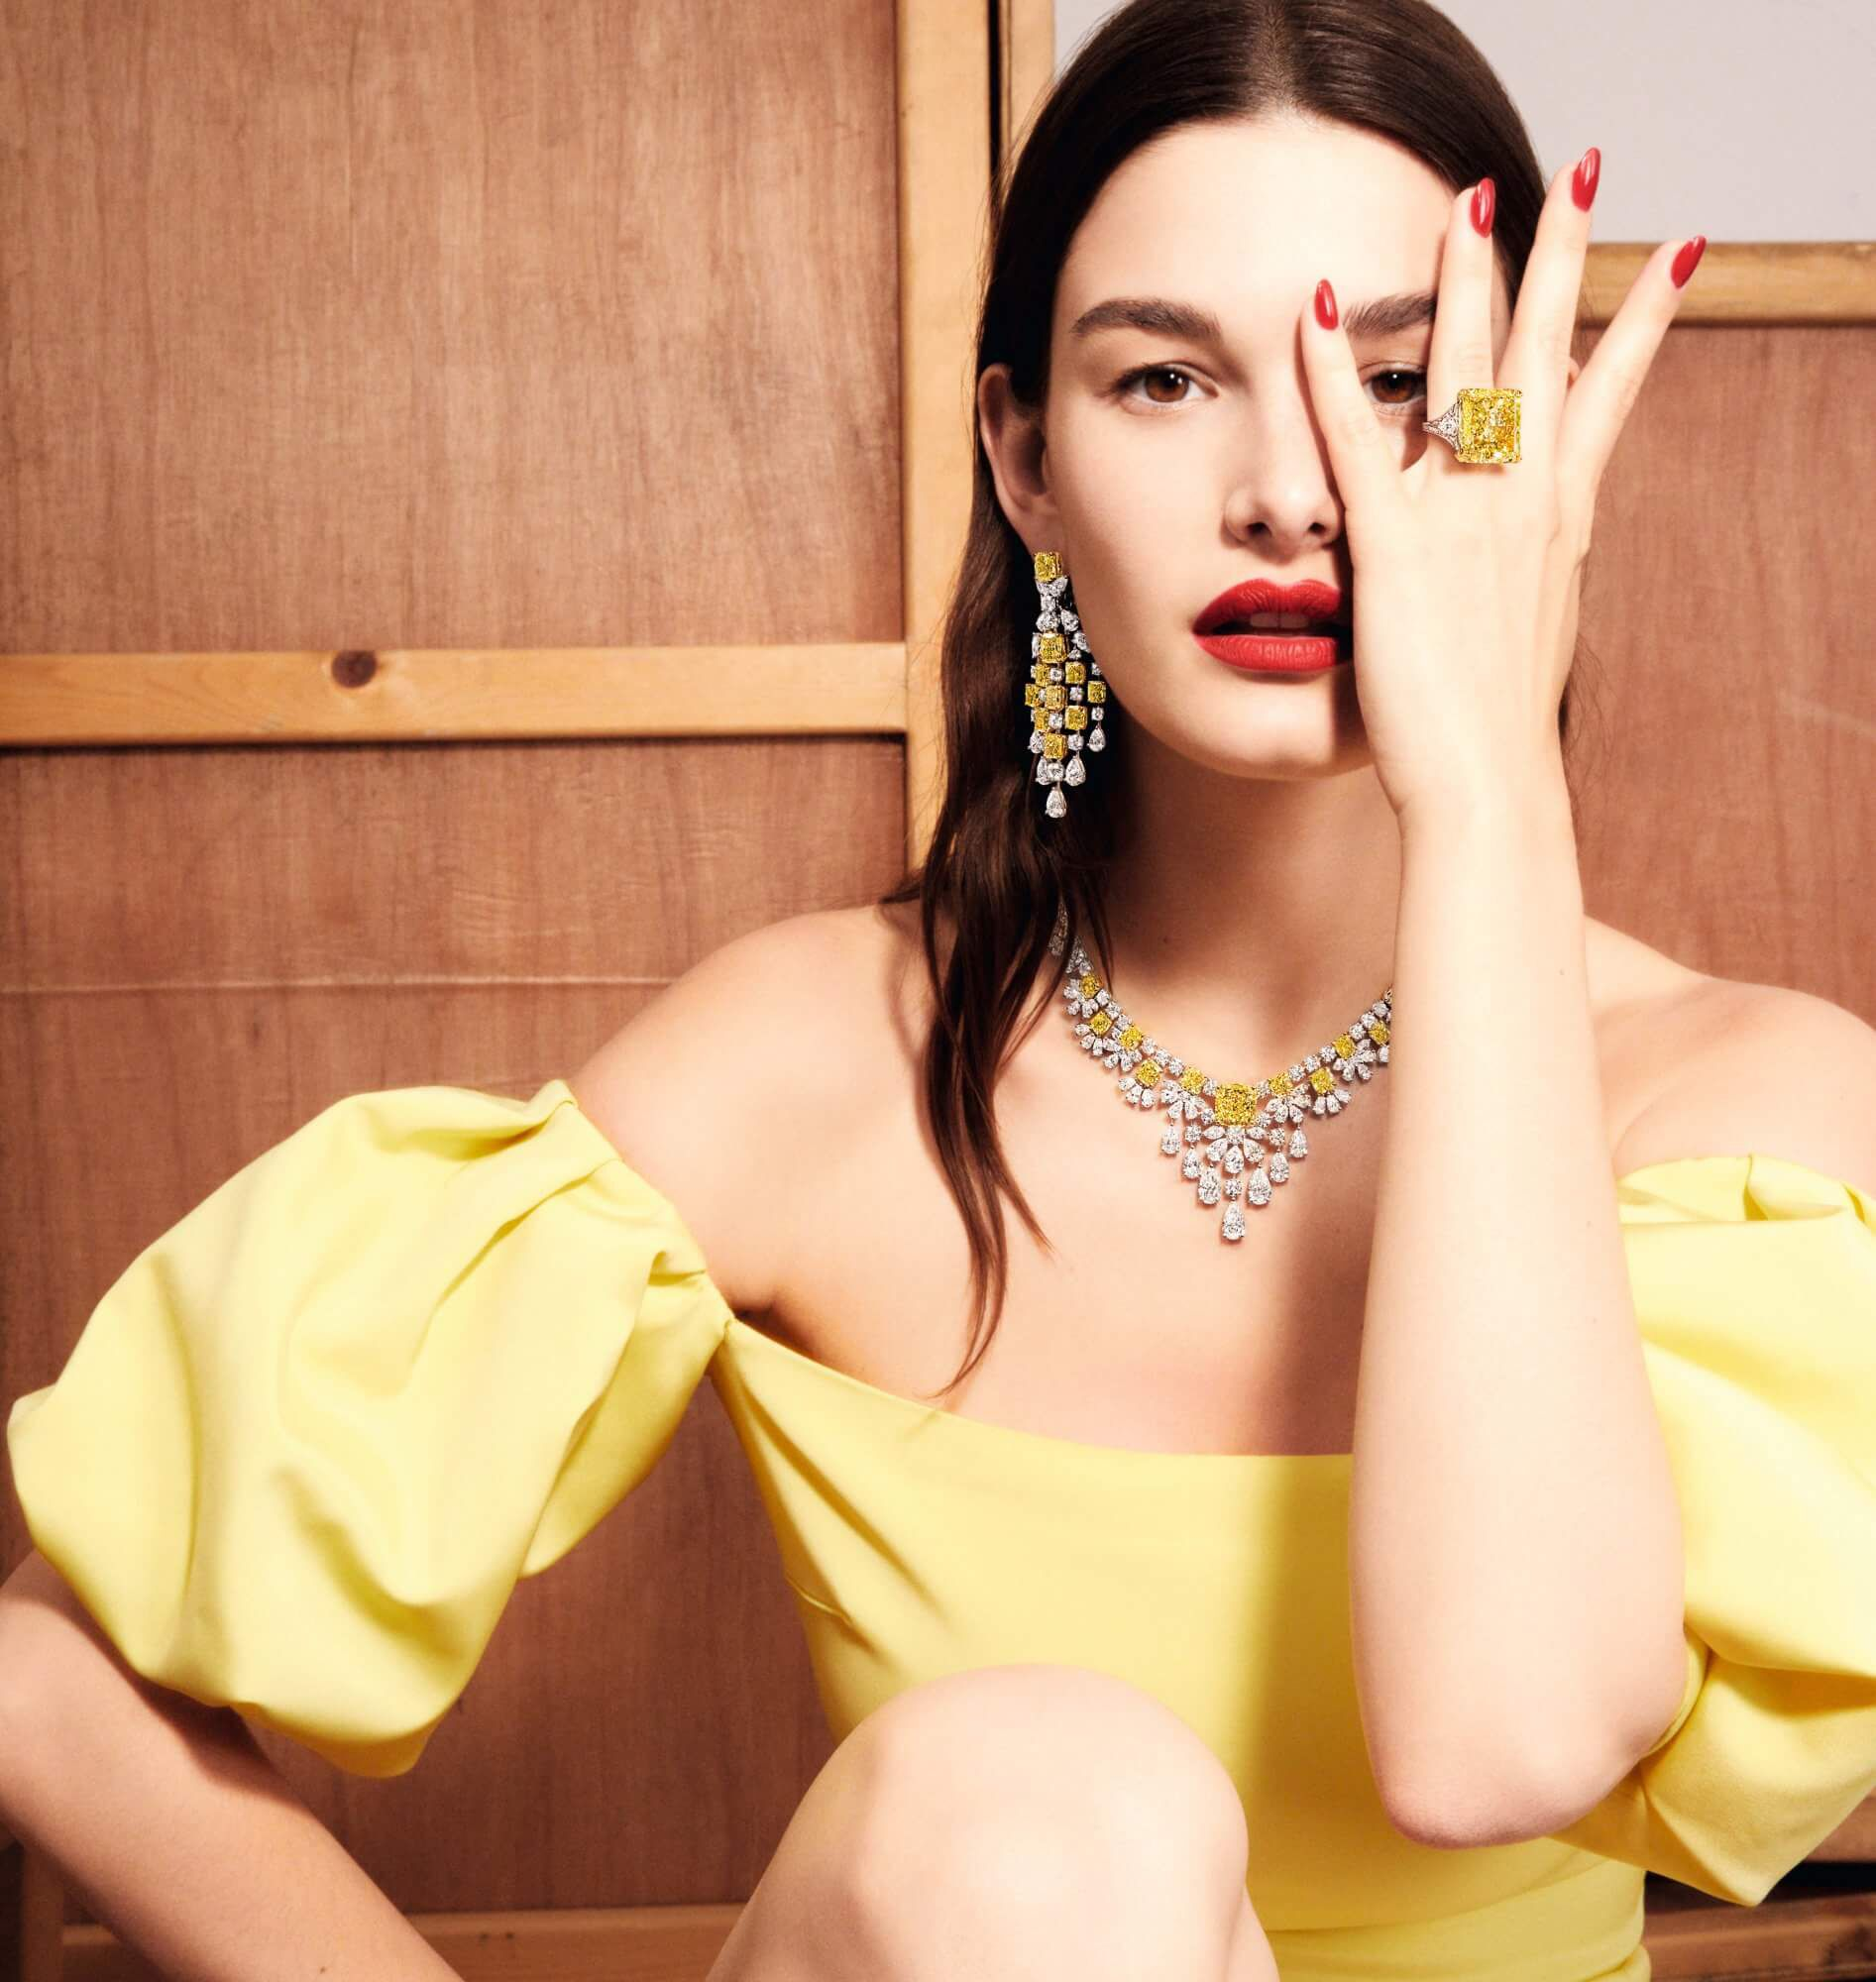 Model wears Graff yellow and white diamond high jewellery earrings and ring